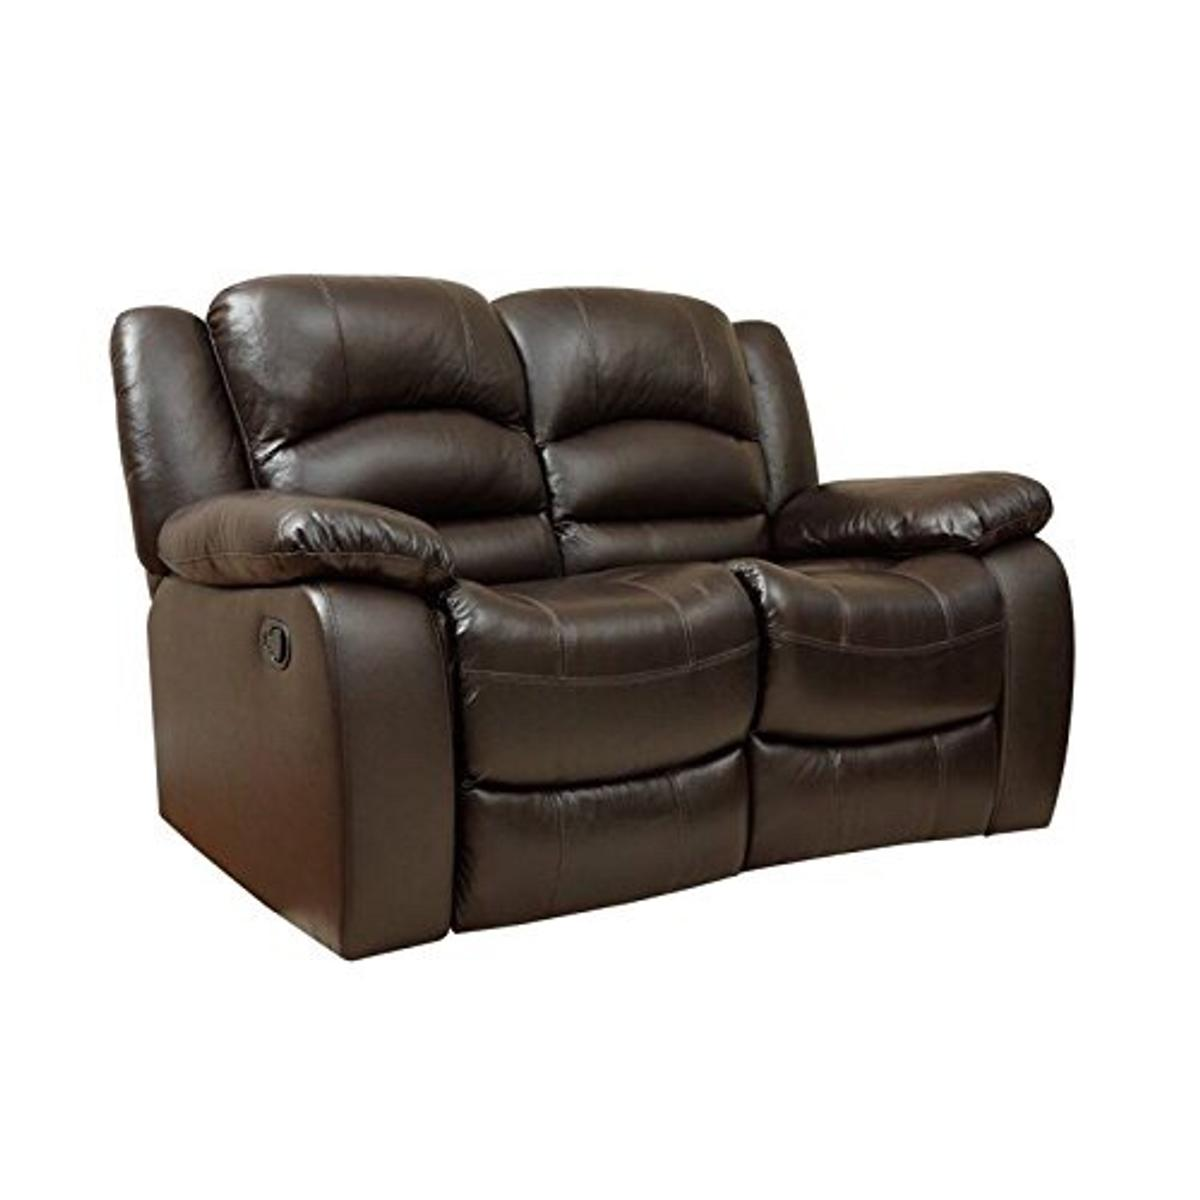 2x2 seater brown leather recliner sofas